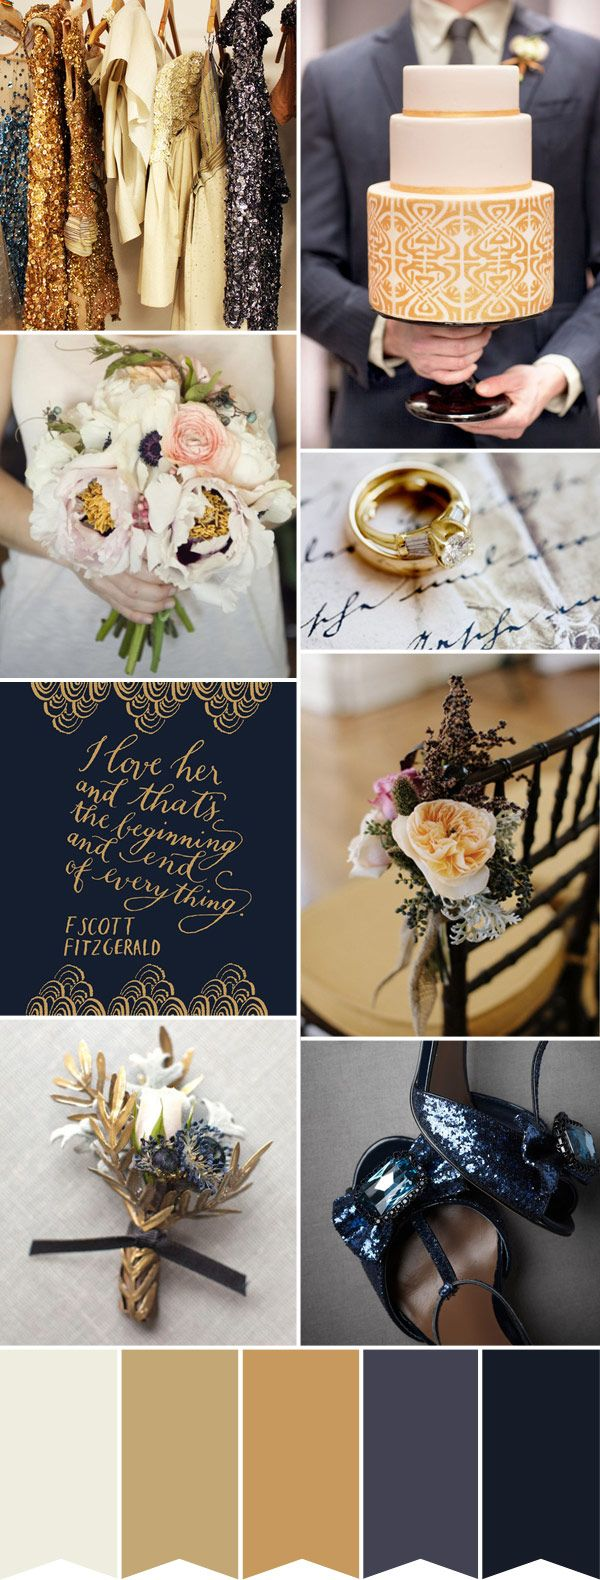 A navy and gold wedding inspiration board.